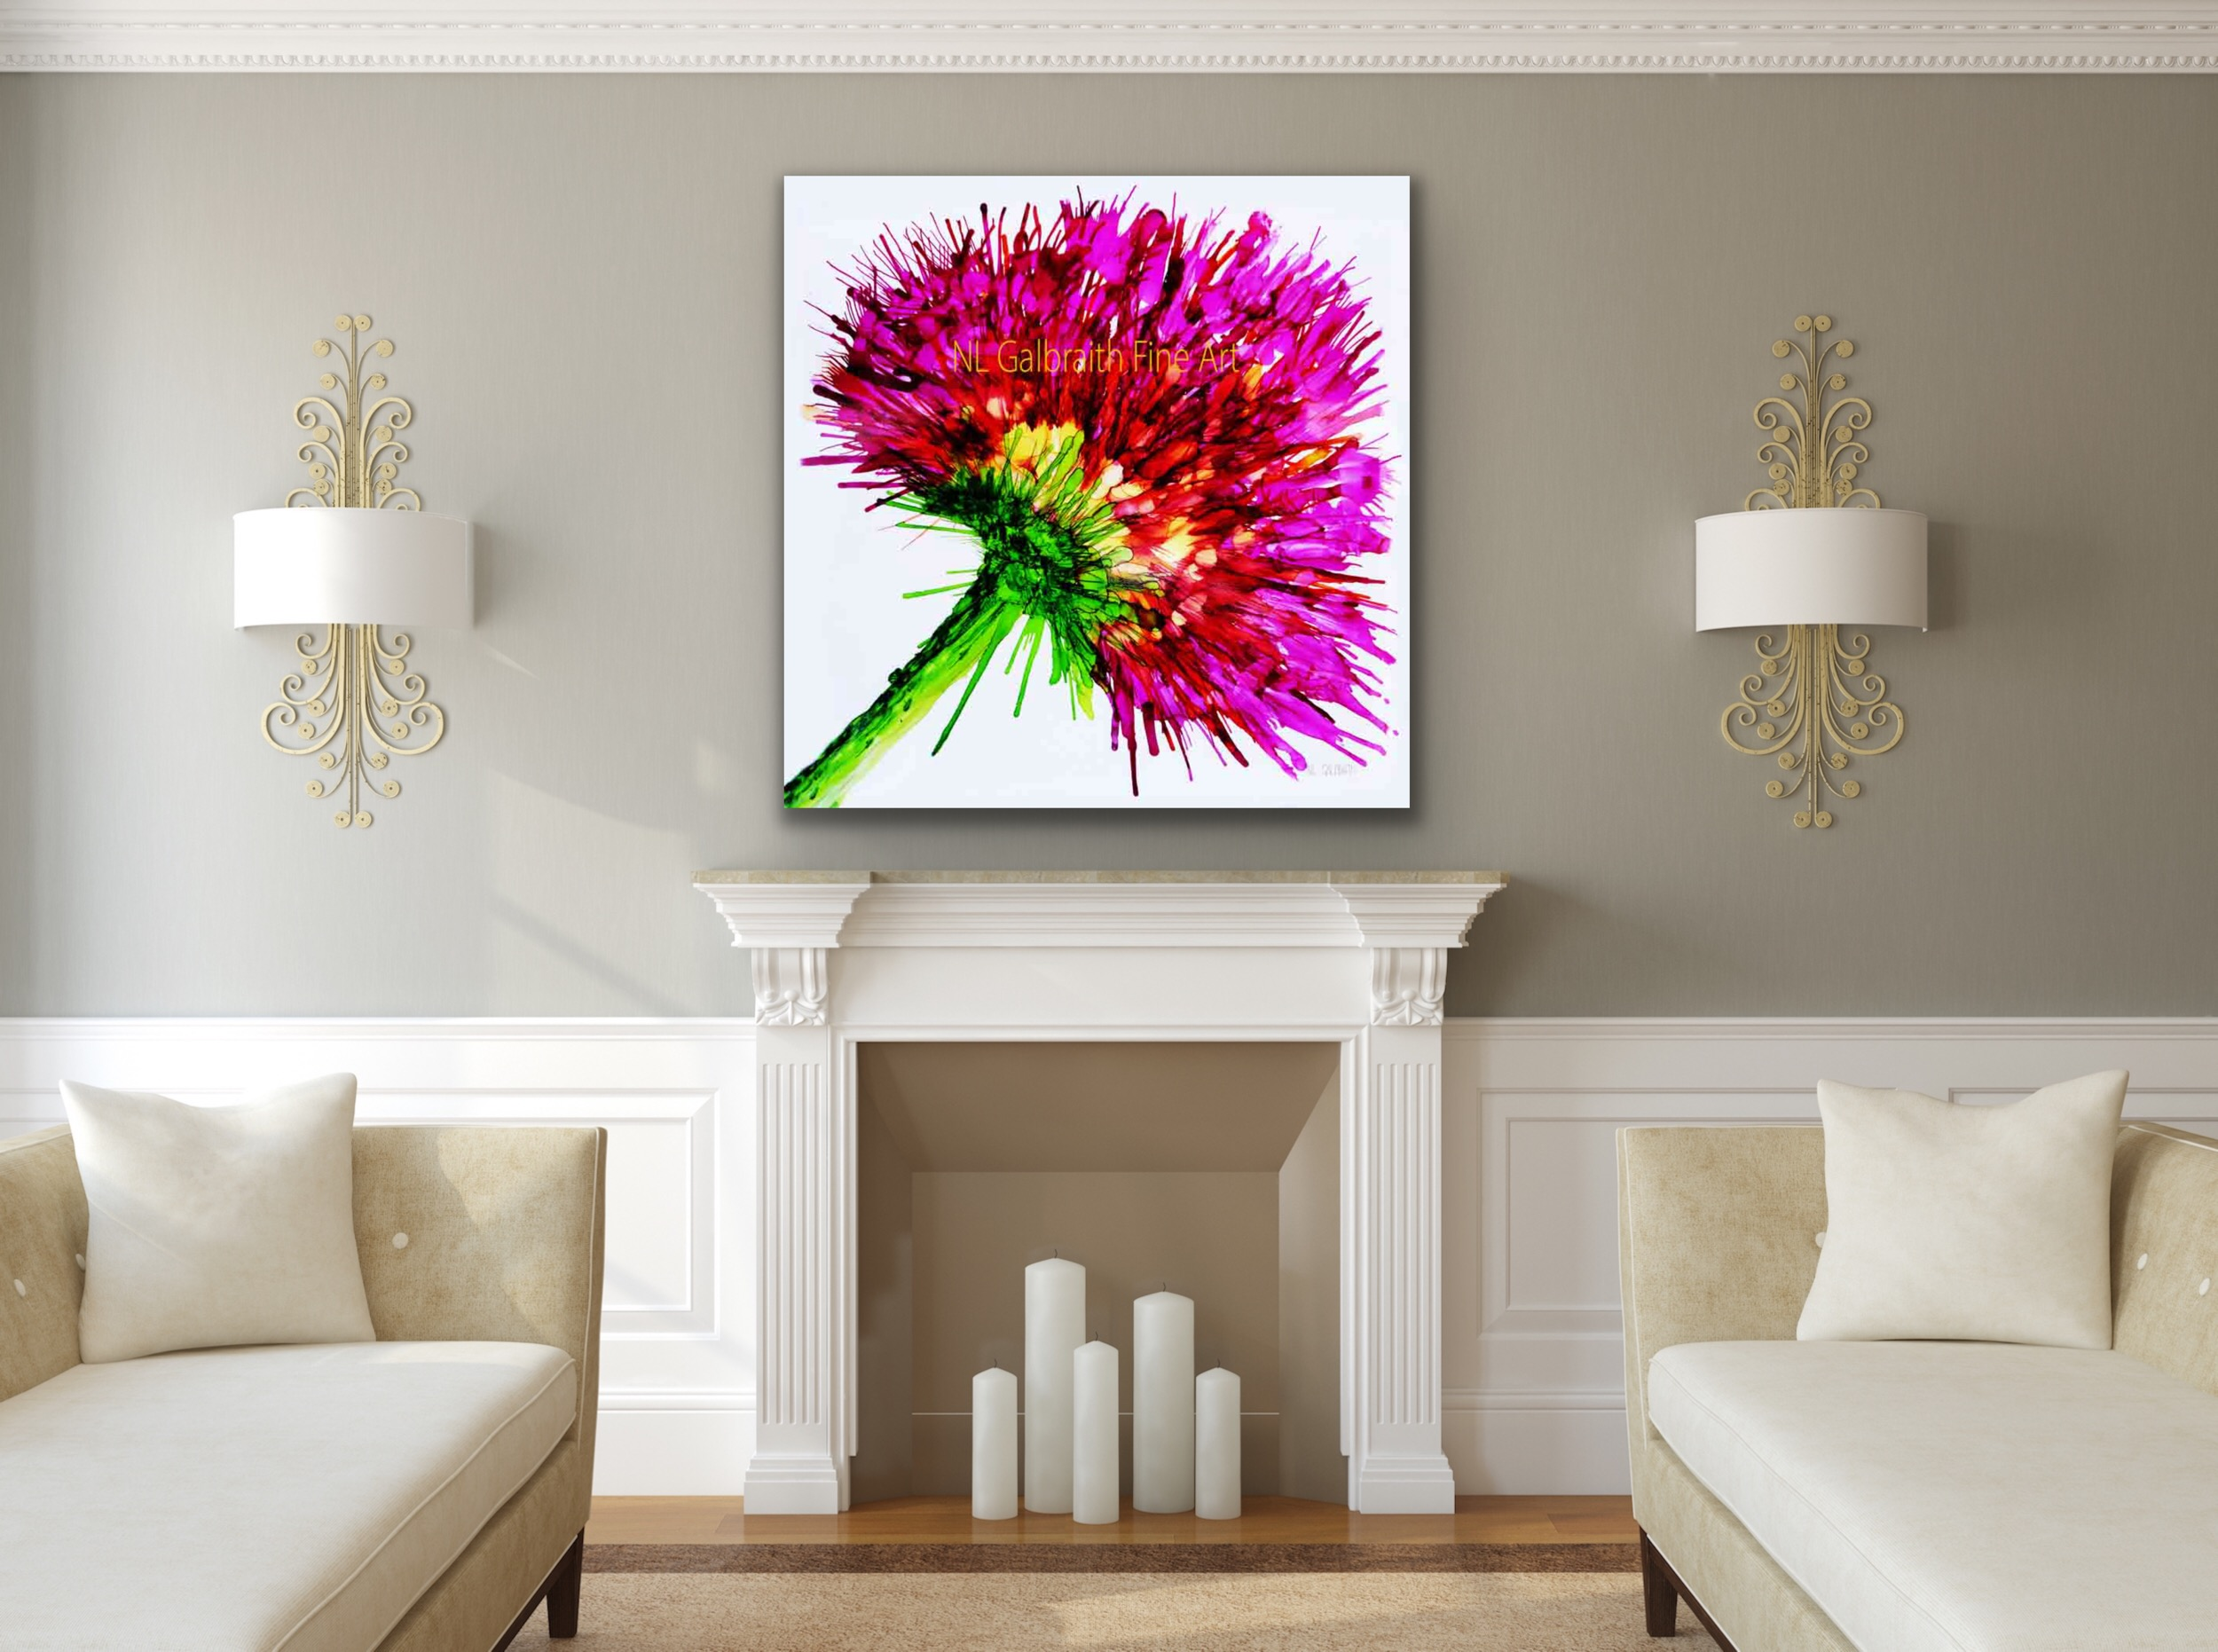 Large Pink Flower Graphic Over a Fireplace